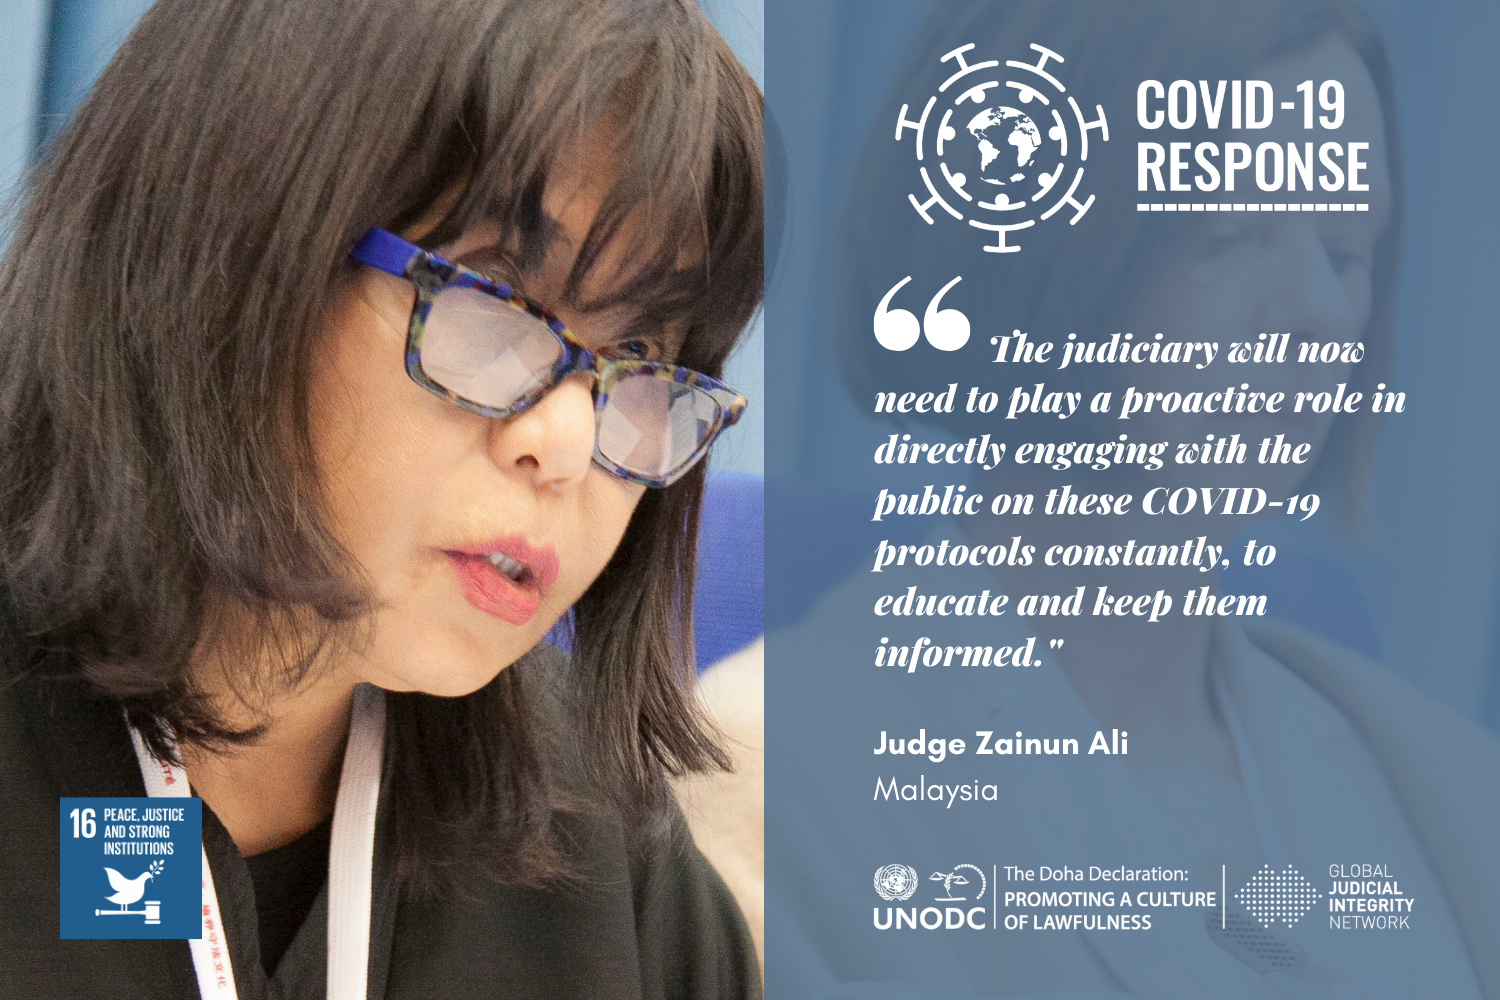 The Malaysian Court's Accessibility to Justice in the Time of COVID-19